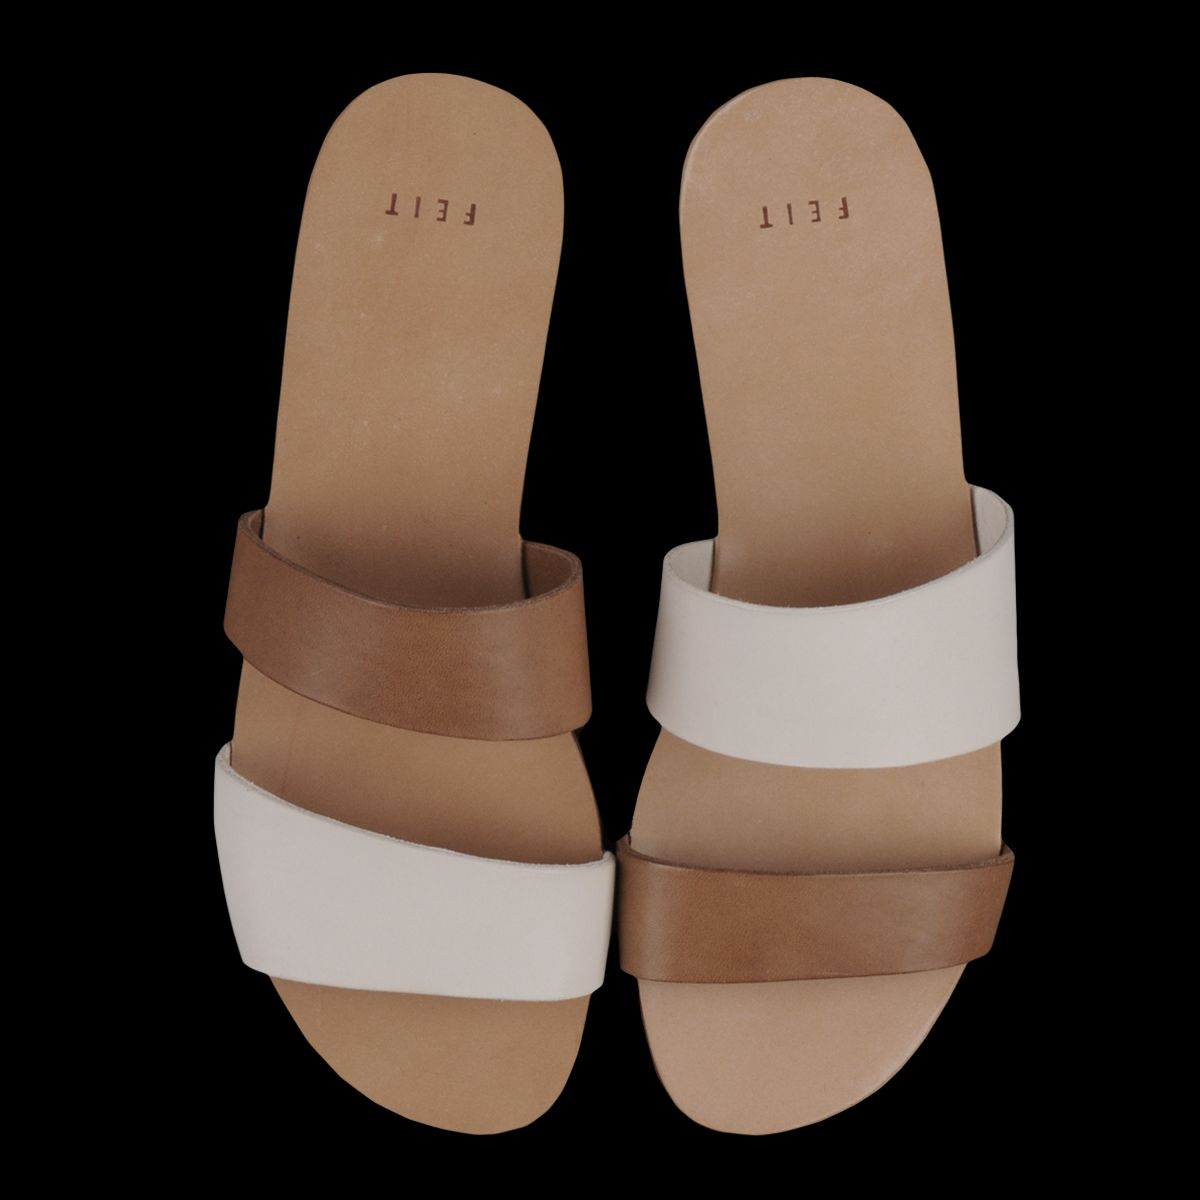 Asymmetrical Sandal In Seed Tan With Images Sandals Tan